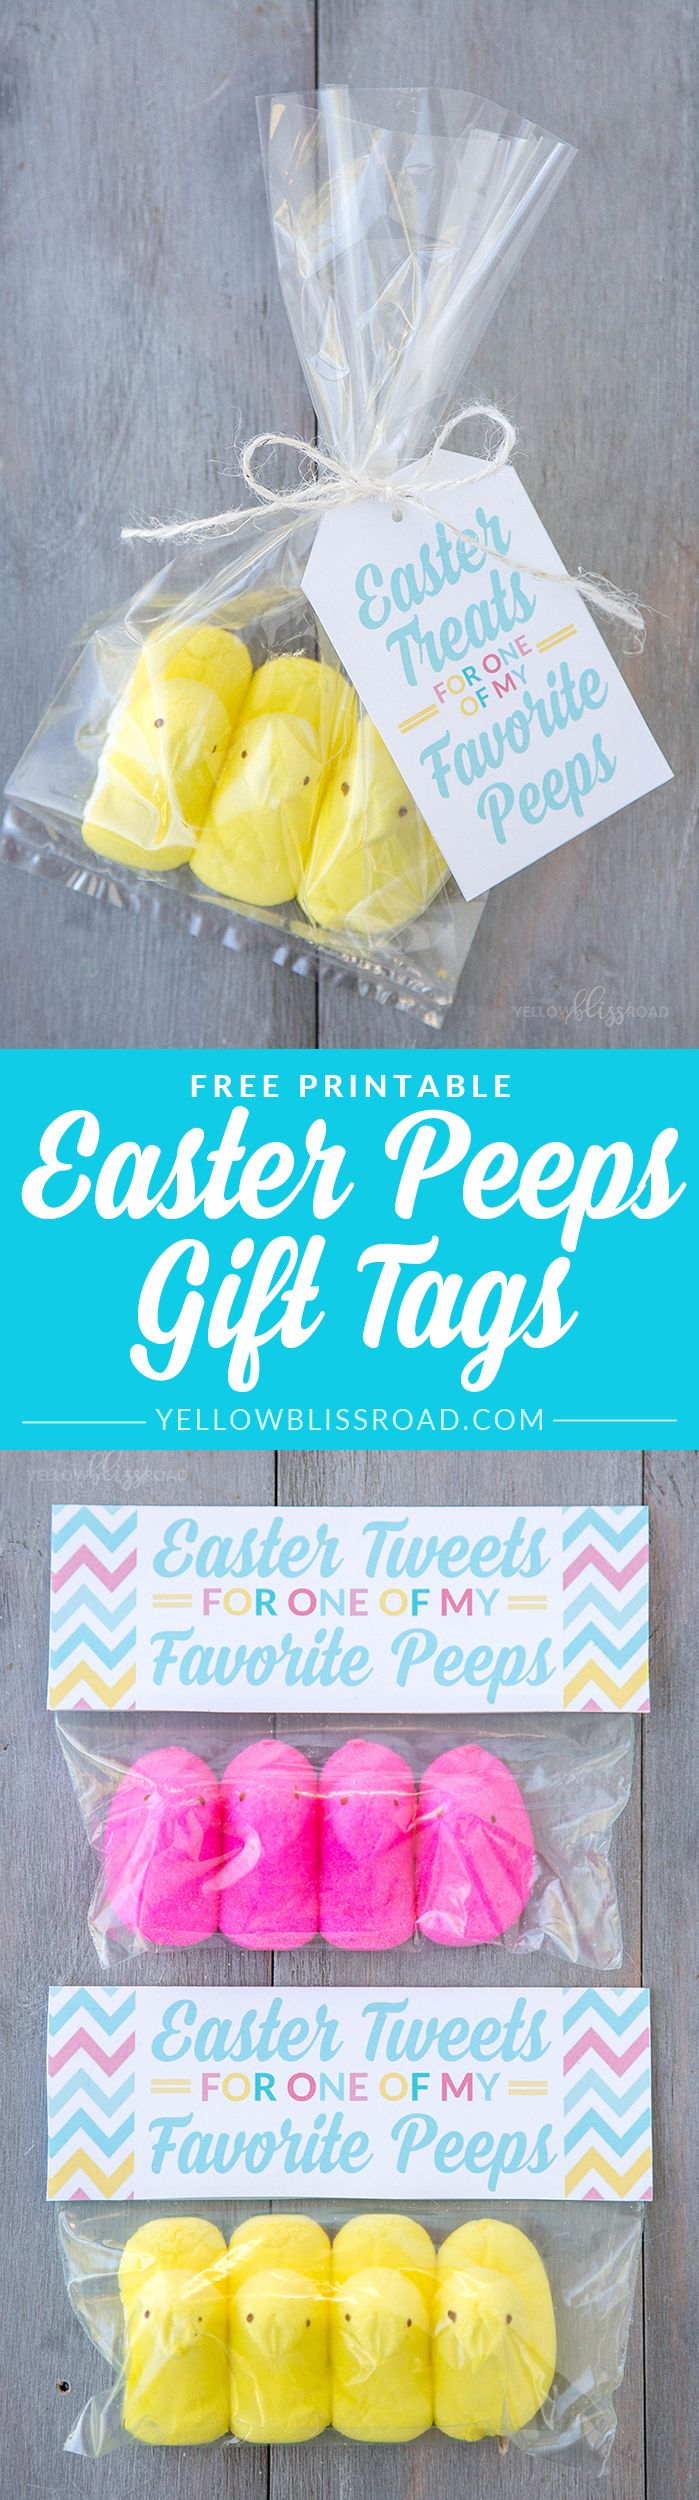 Peeps easter gift idea with free printables free printable gift free printable peeps easter gift tags use these free printable gift tags to make sweet easter gifts for your favorite peeps negle Image collections